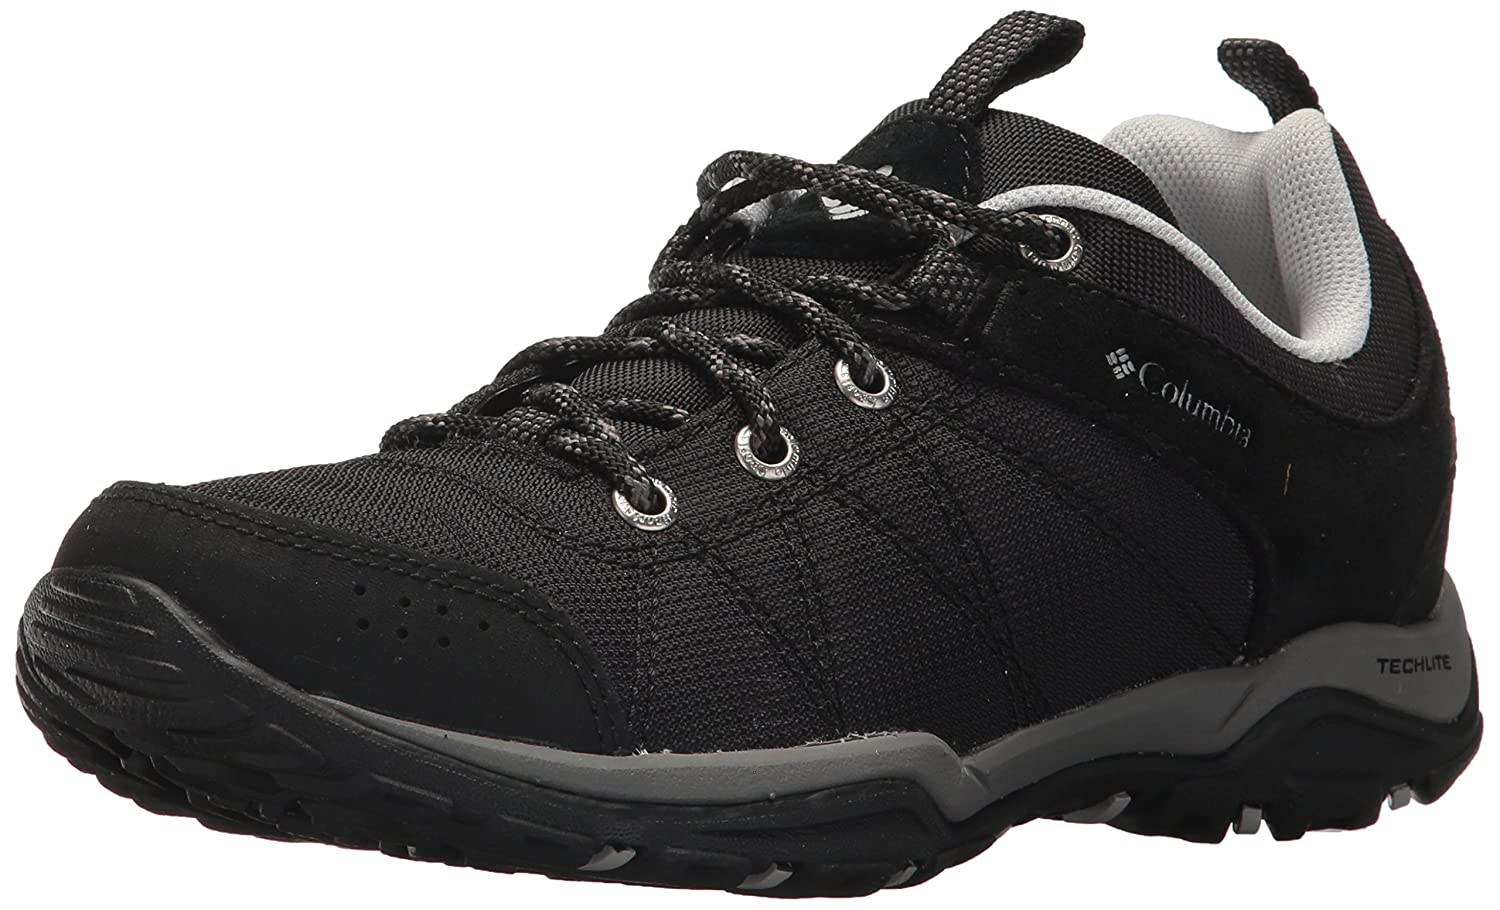 Columbia Damen Sneakers, Fire Venture Textile, Schwarz (Black, Grey Ice), Größe: 40.5